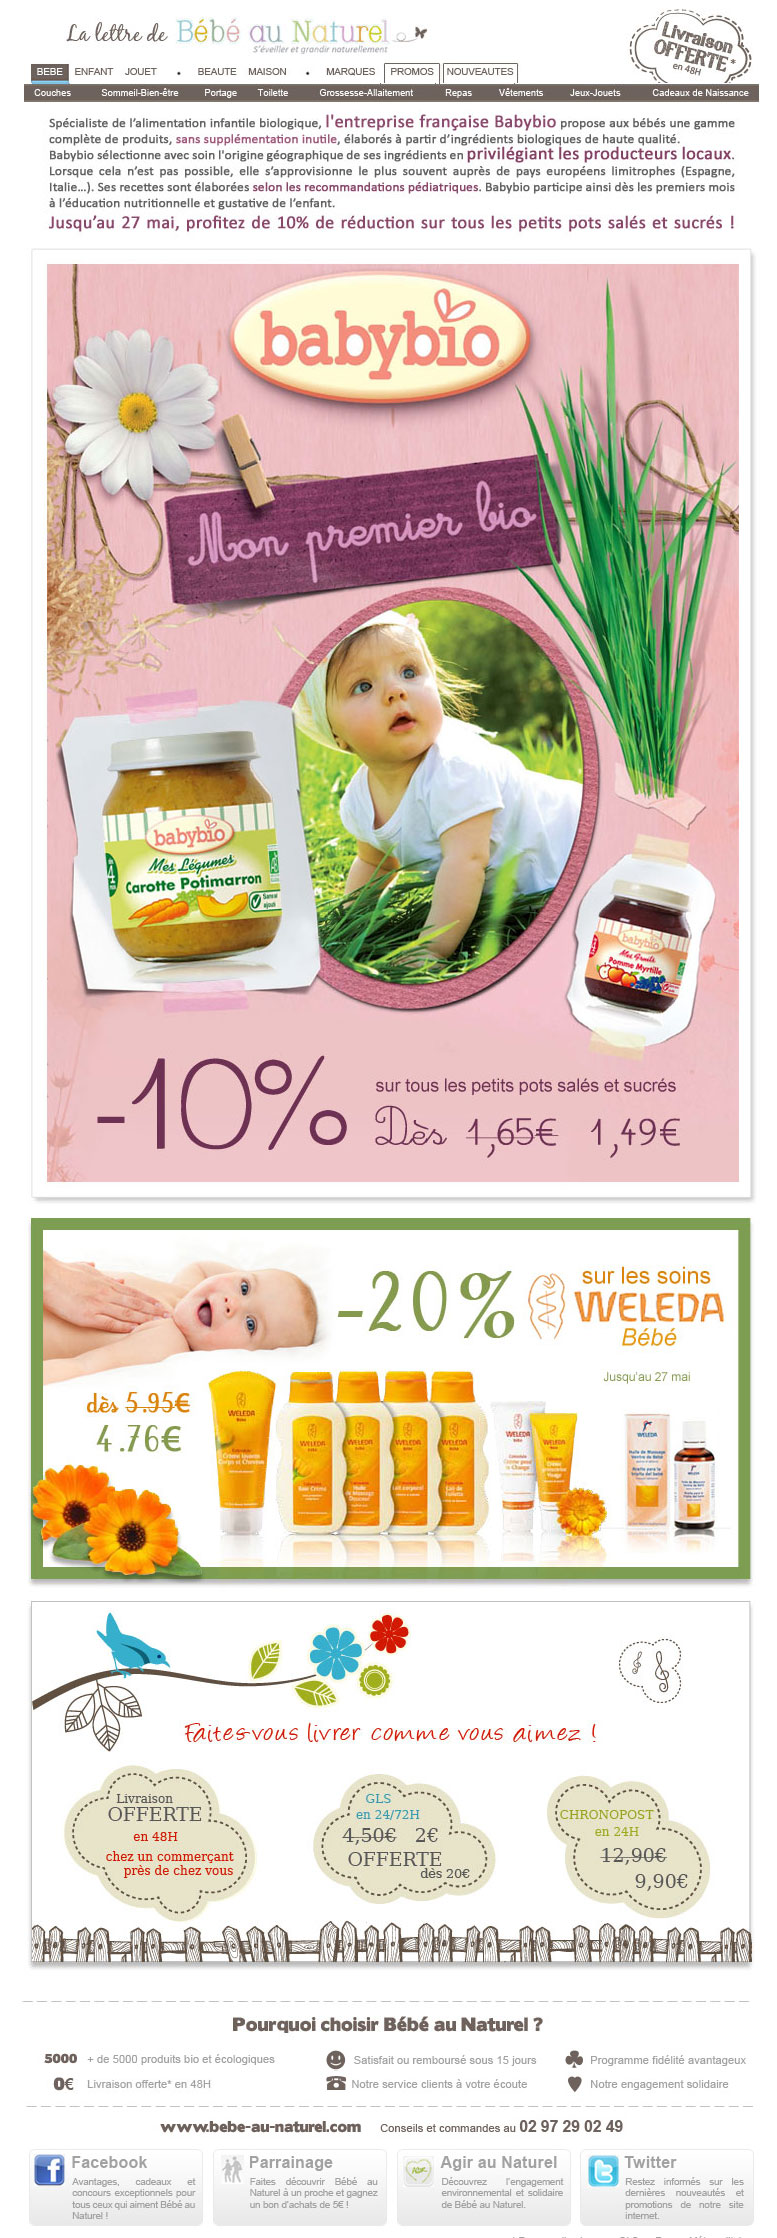 Newsletter Bébé au Naturel 09.05.2012